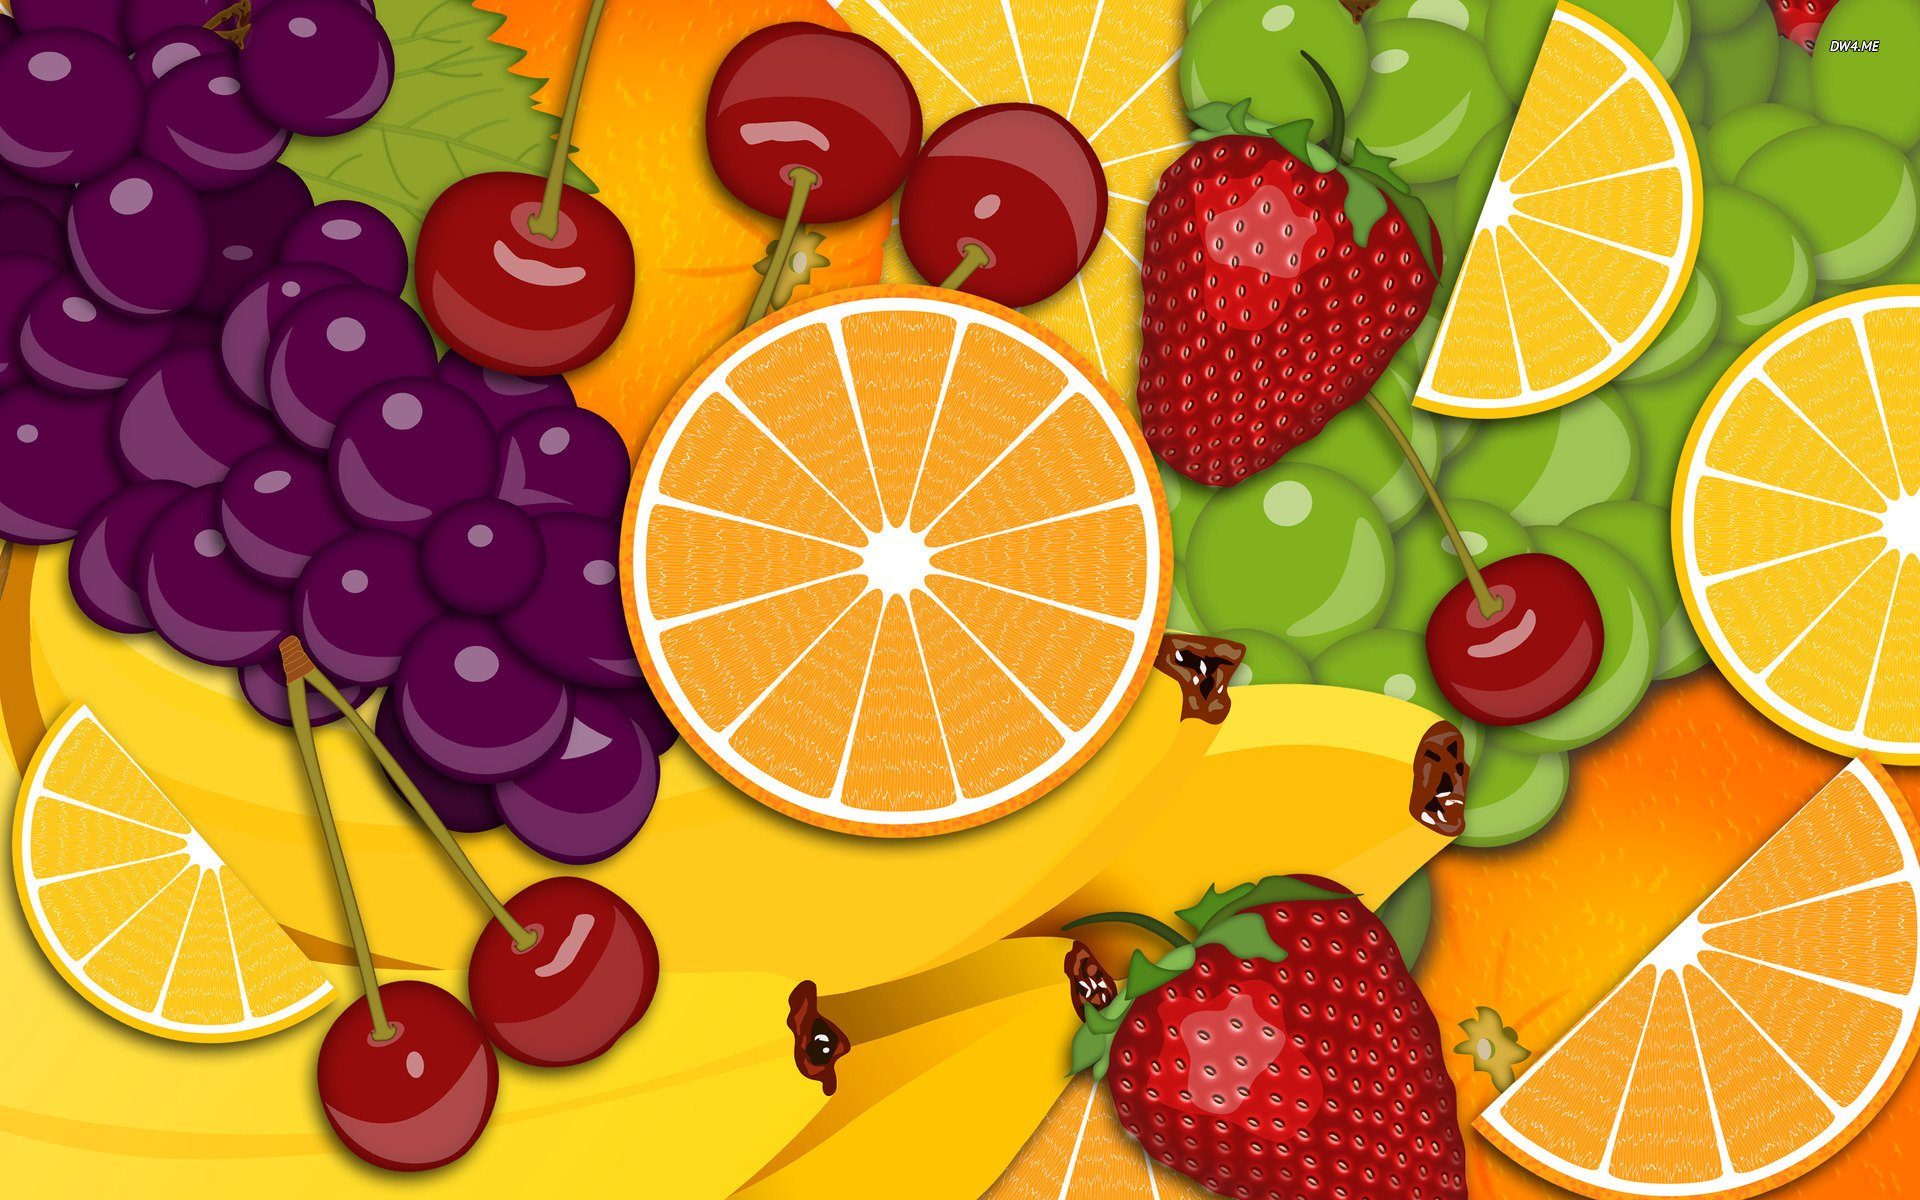 All the fruits wallpaper - Fruit Wallpaper Vector Wallpapers 1245